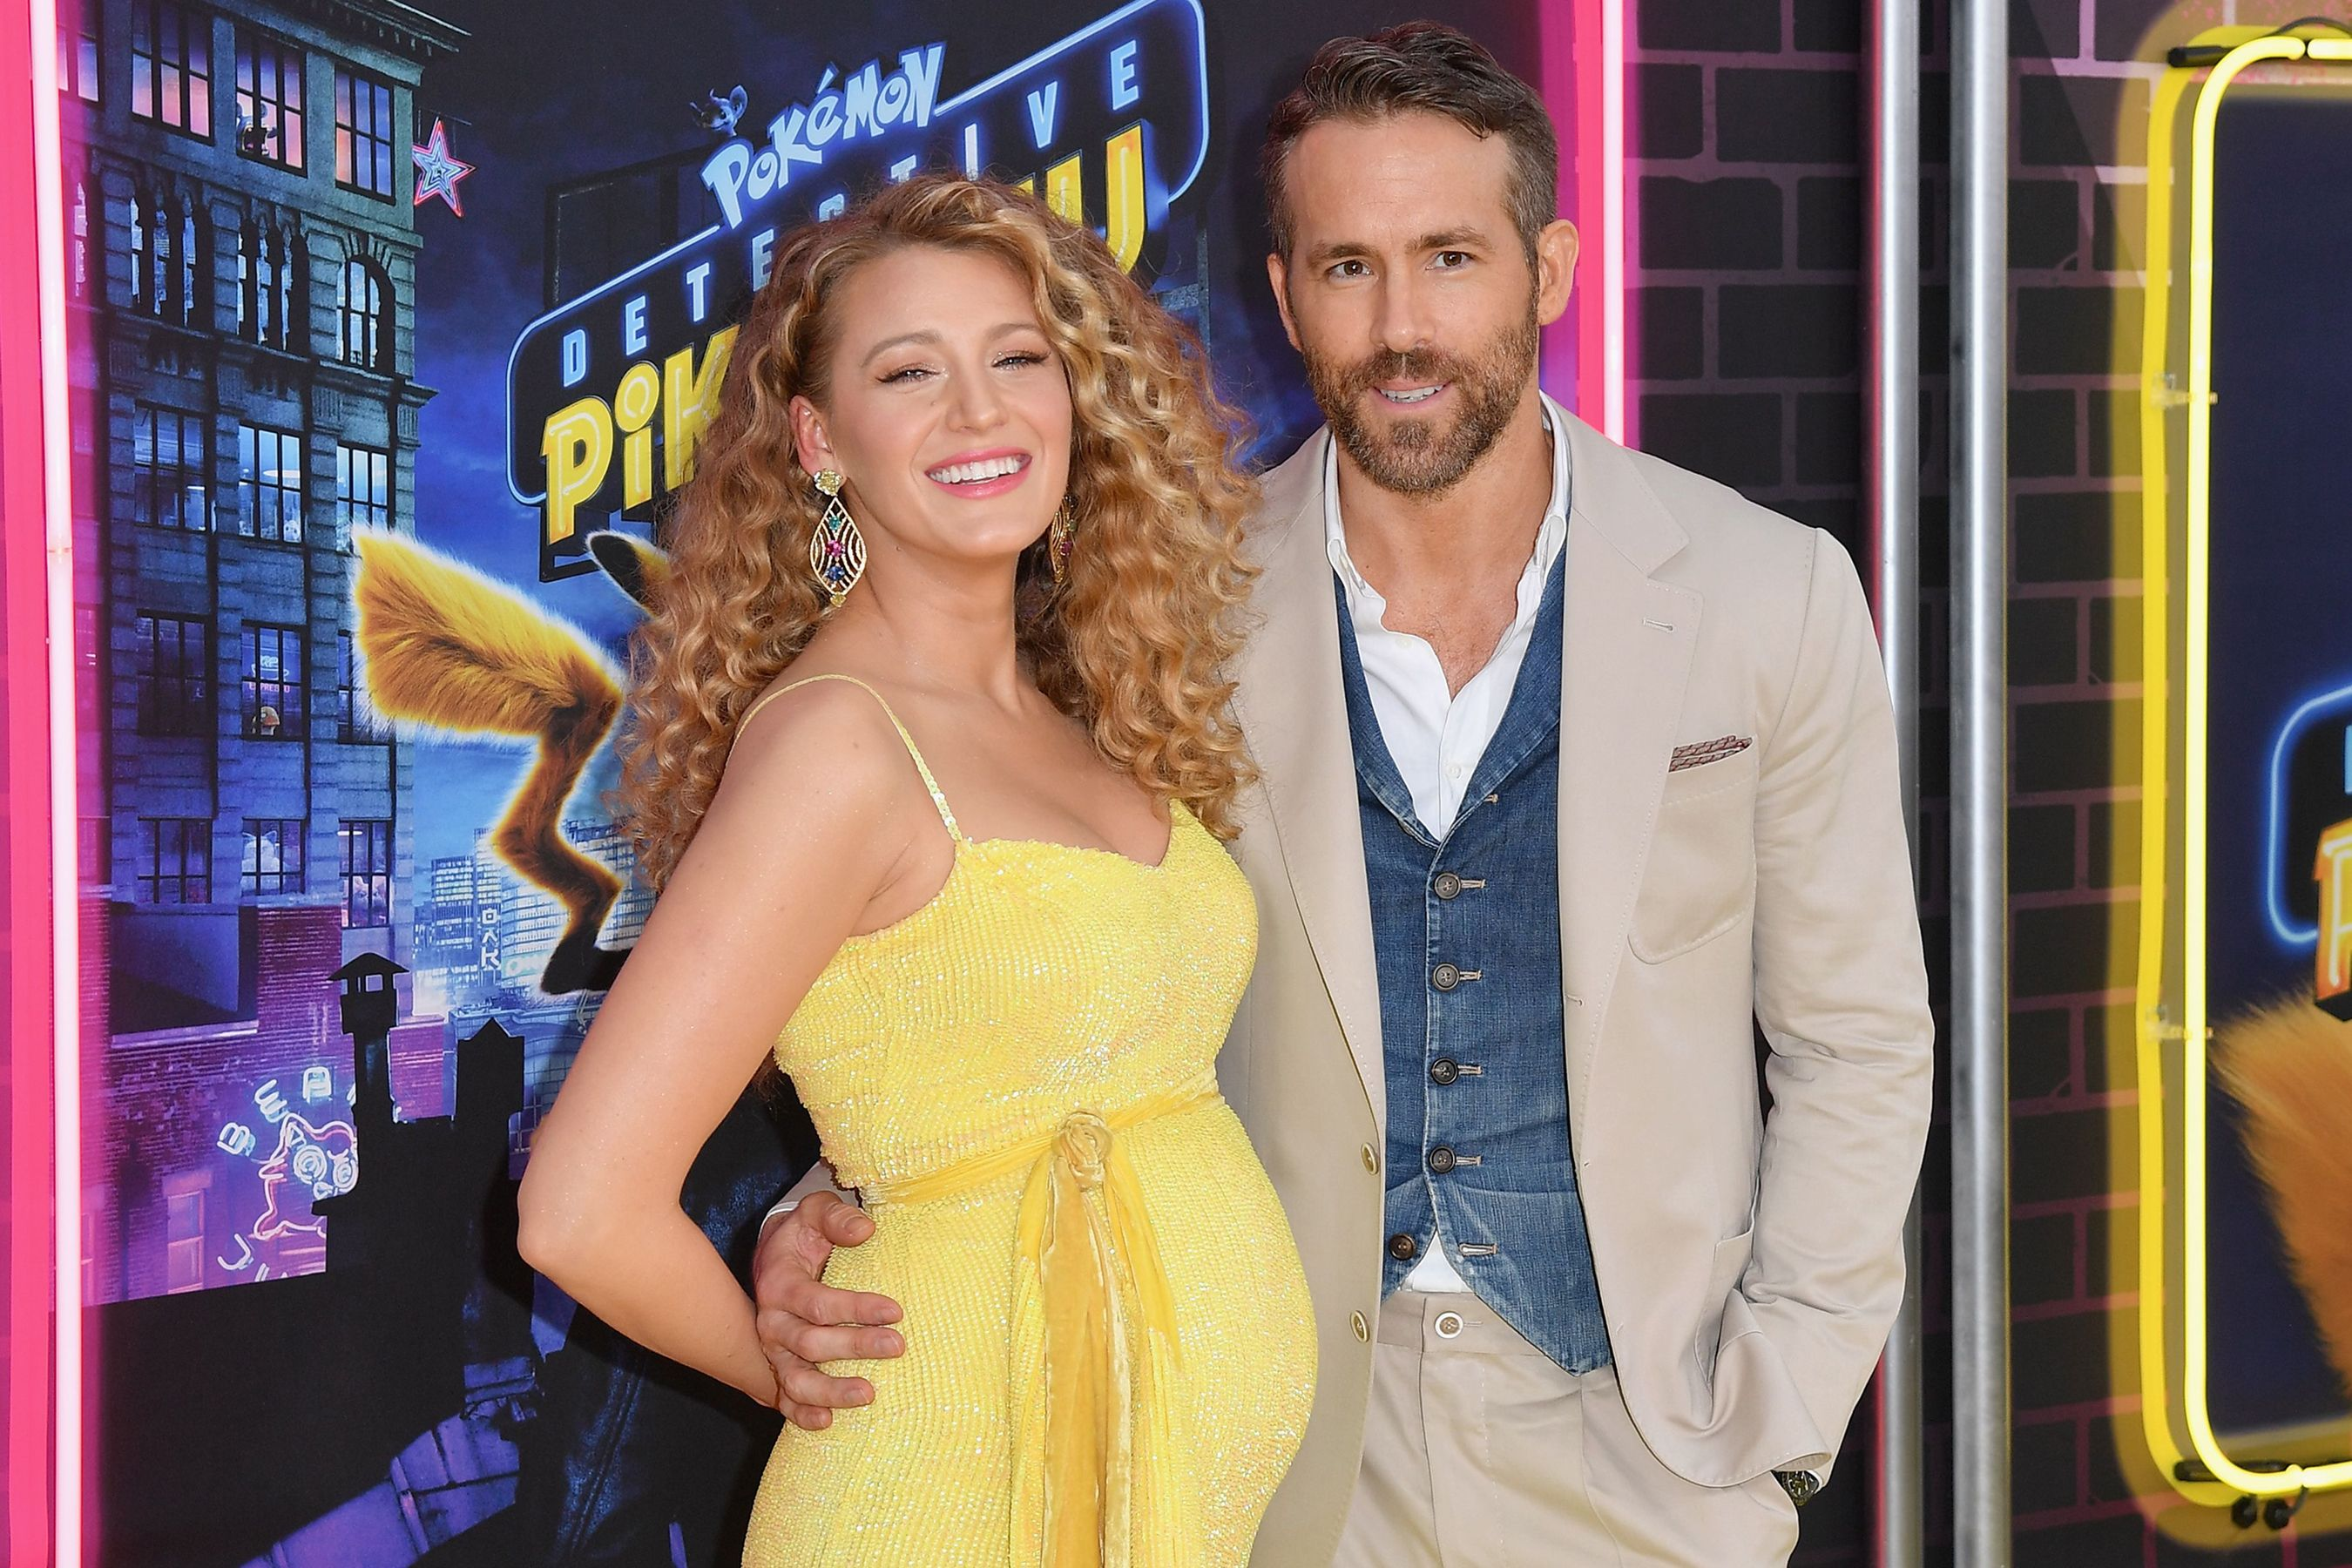 Ryan Reynolds Shares the 'Greatest Present' Wife Blake